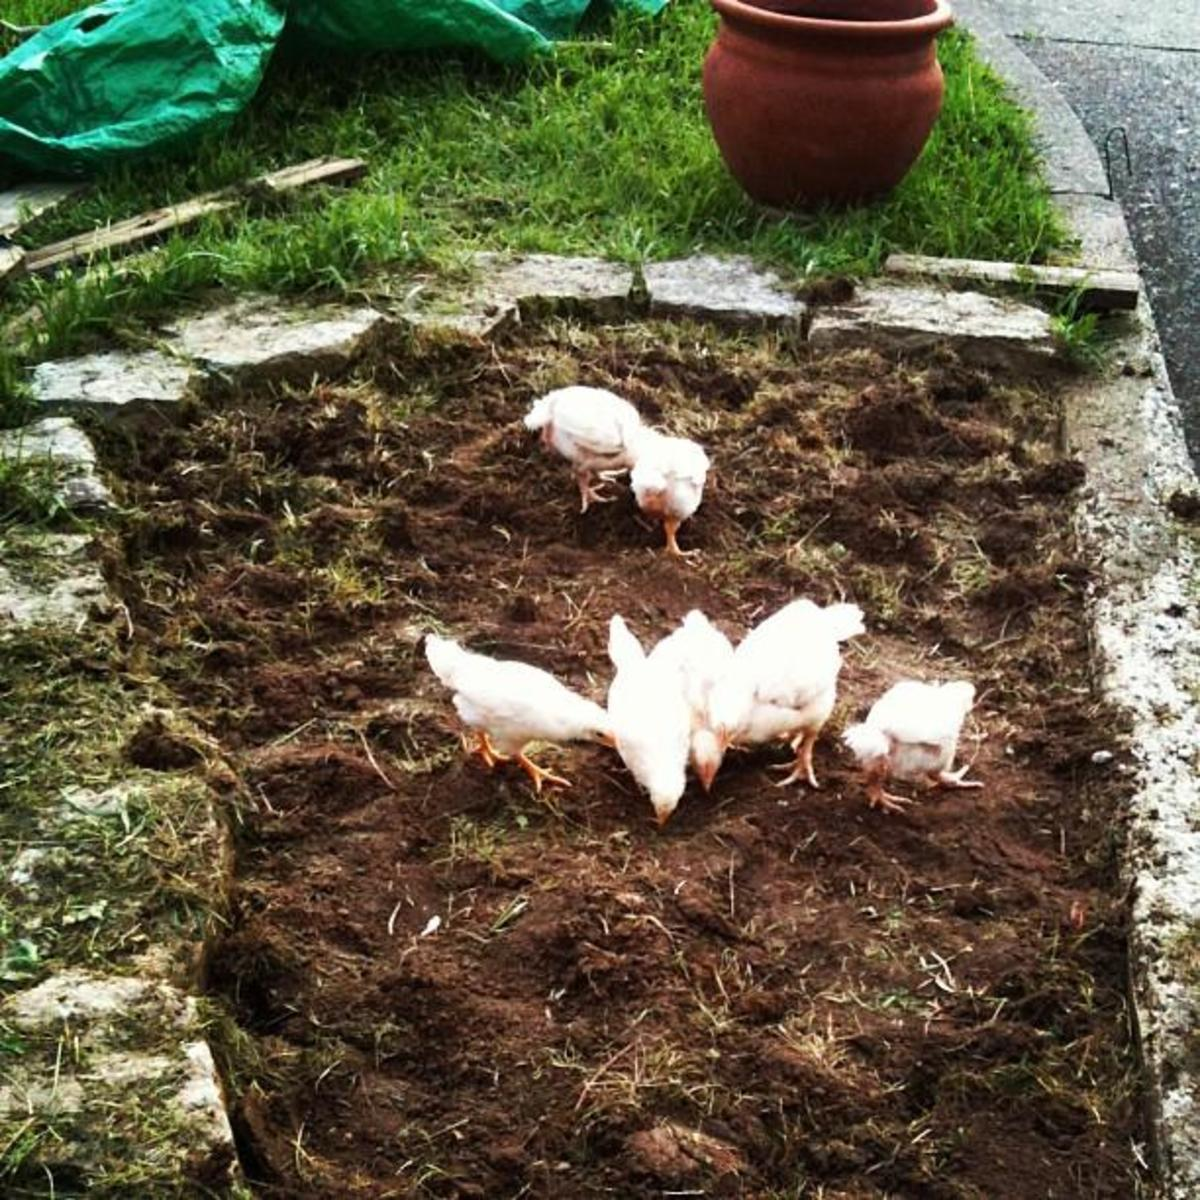 Four week old Cornish Cross chicks scratching in the freshly turned dirt of the herb garden.